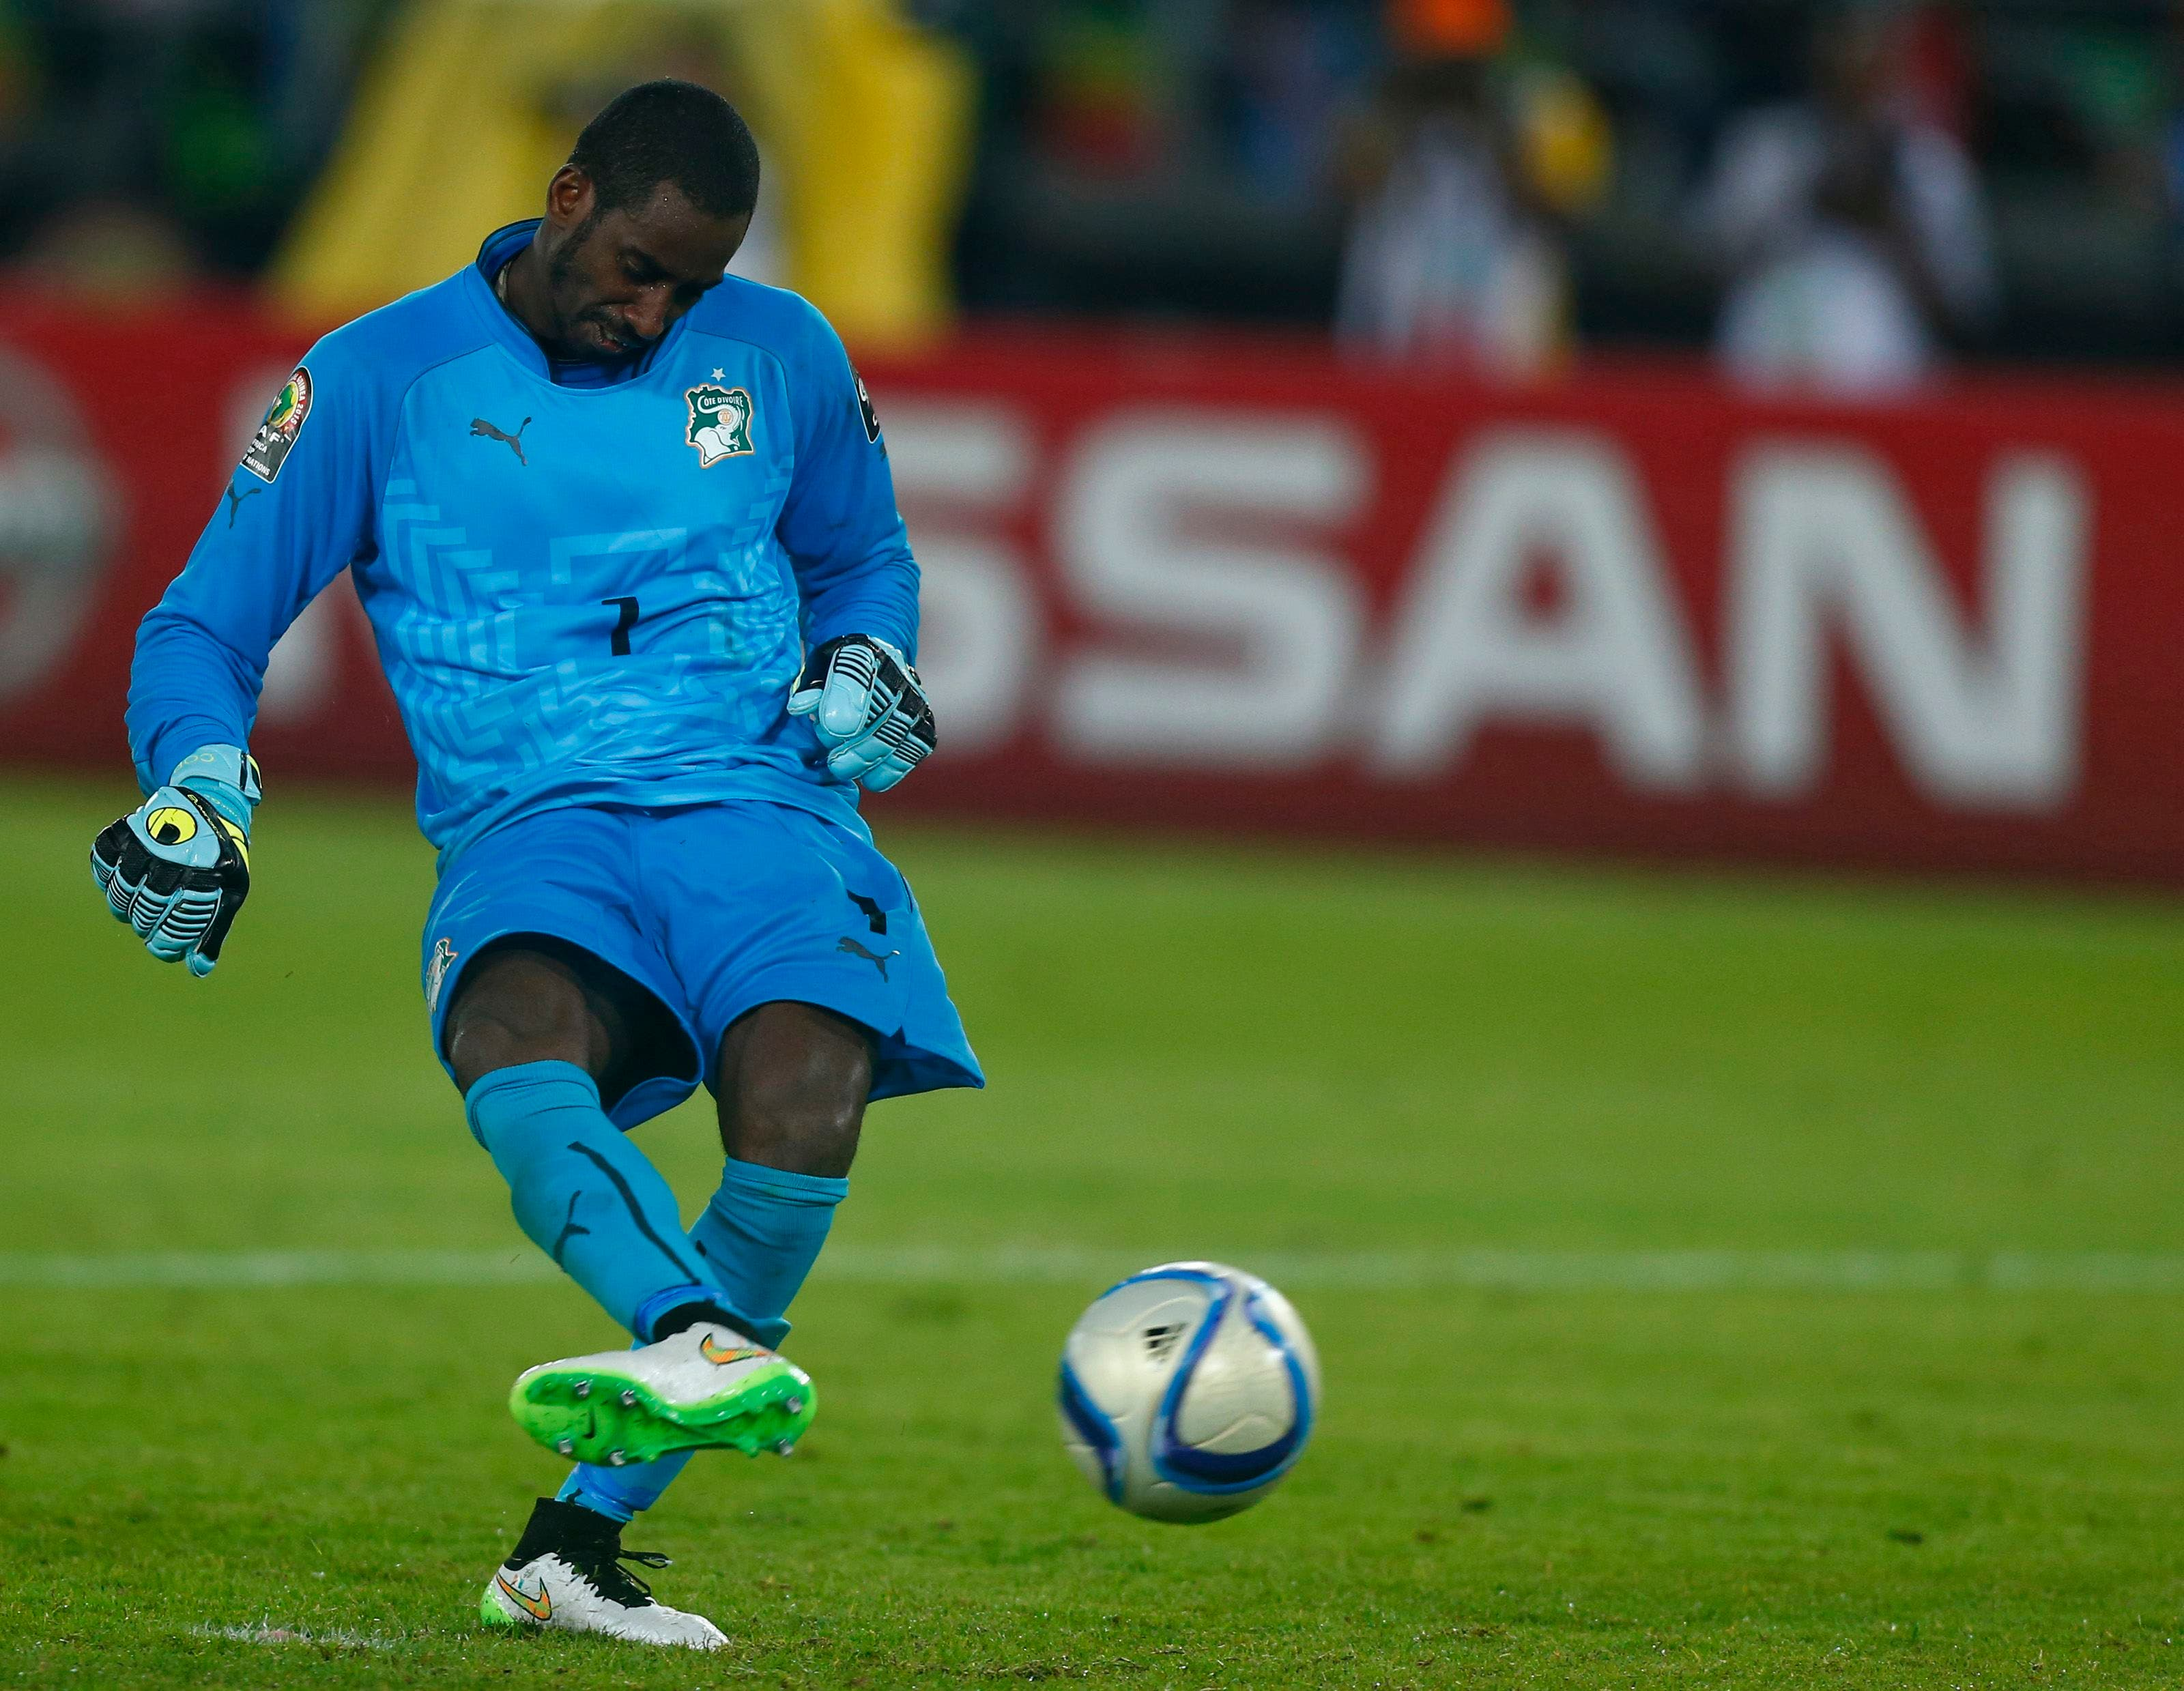 Ivory Coast's goalkeeper Boubacar Barry scores the winning penalty kick during the African Nations Cup final soccer match against Ghana in Bata, Feb. 8, 2015. (AFP)